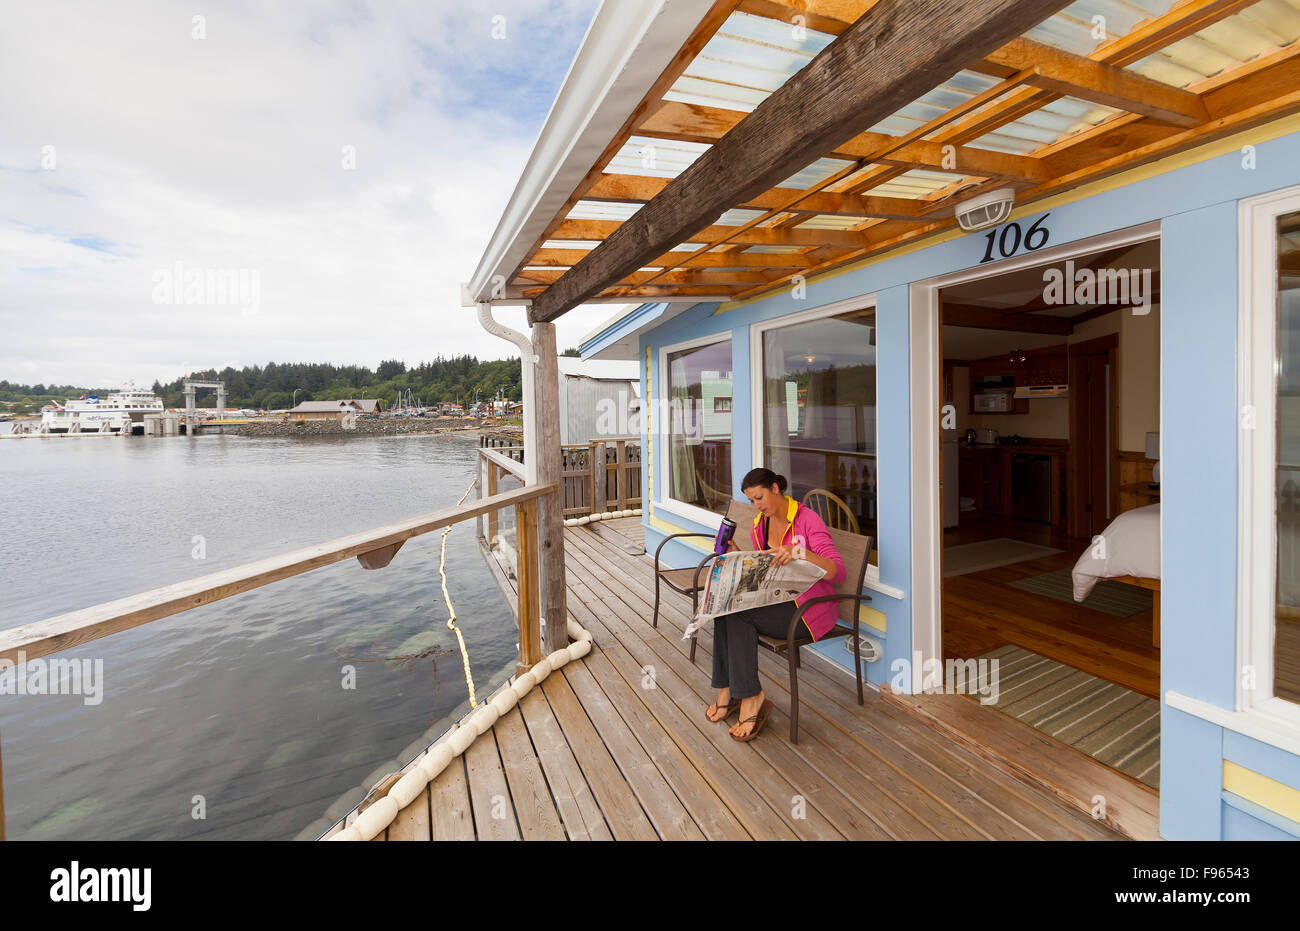 A visitor staying at the Seine Boat Inn relaxes on the waterfront balcony.  Alert Bay. - Stock Image